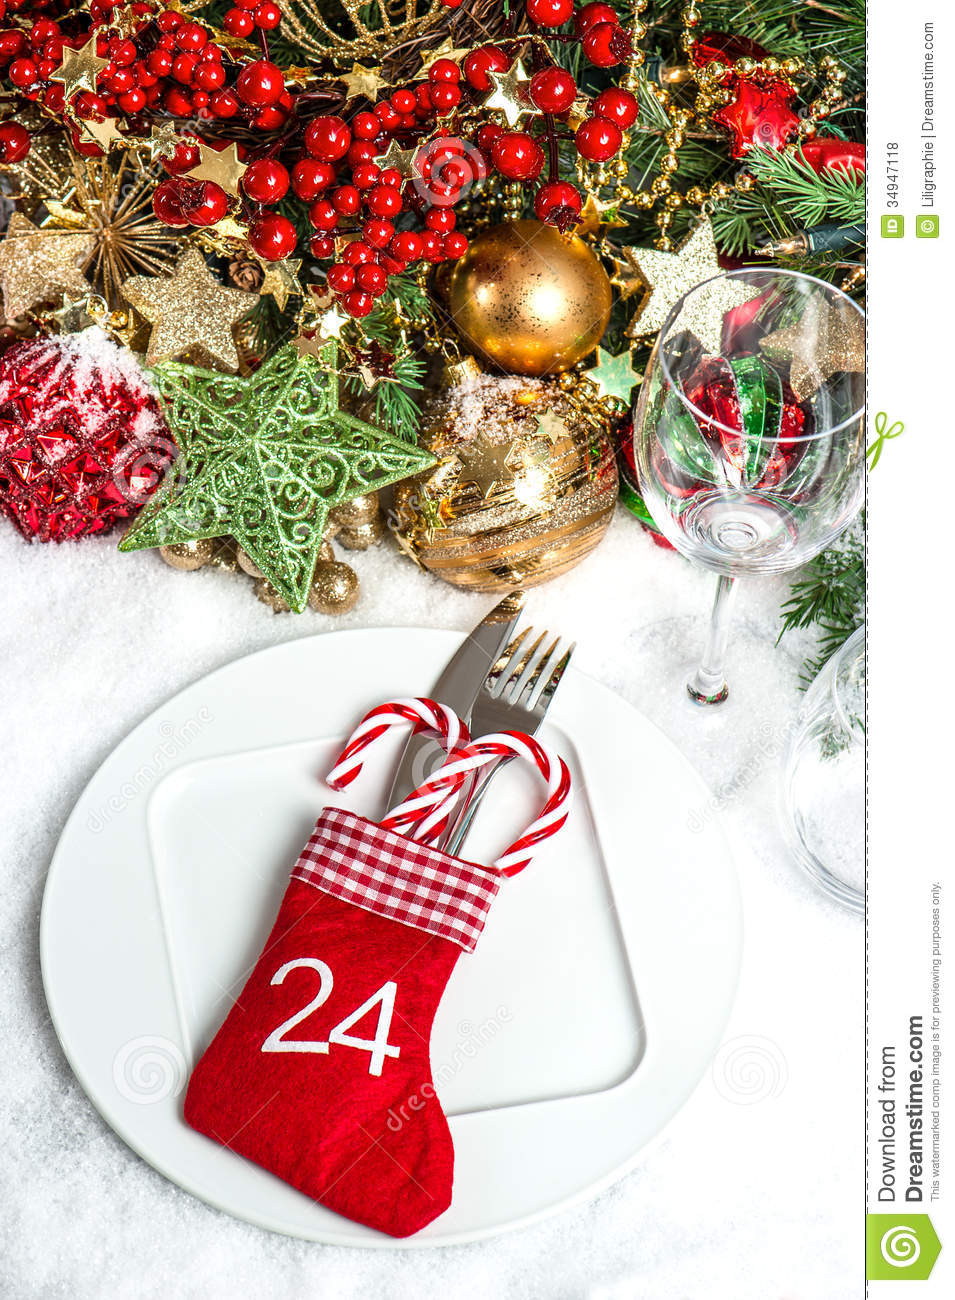 Festive Table Setting With Christmas Tree Decoration Stock ...